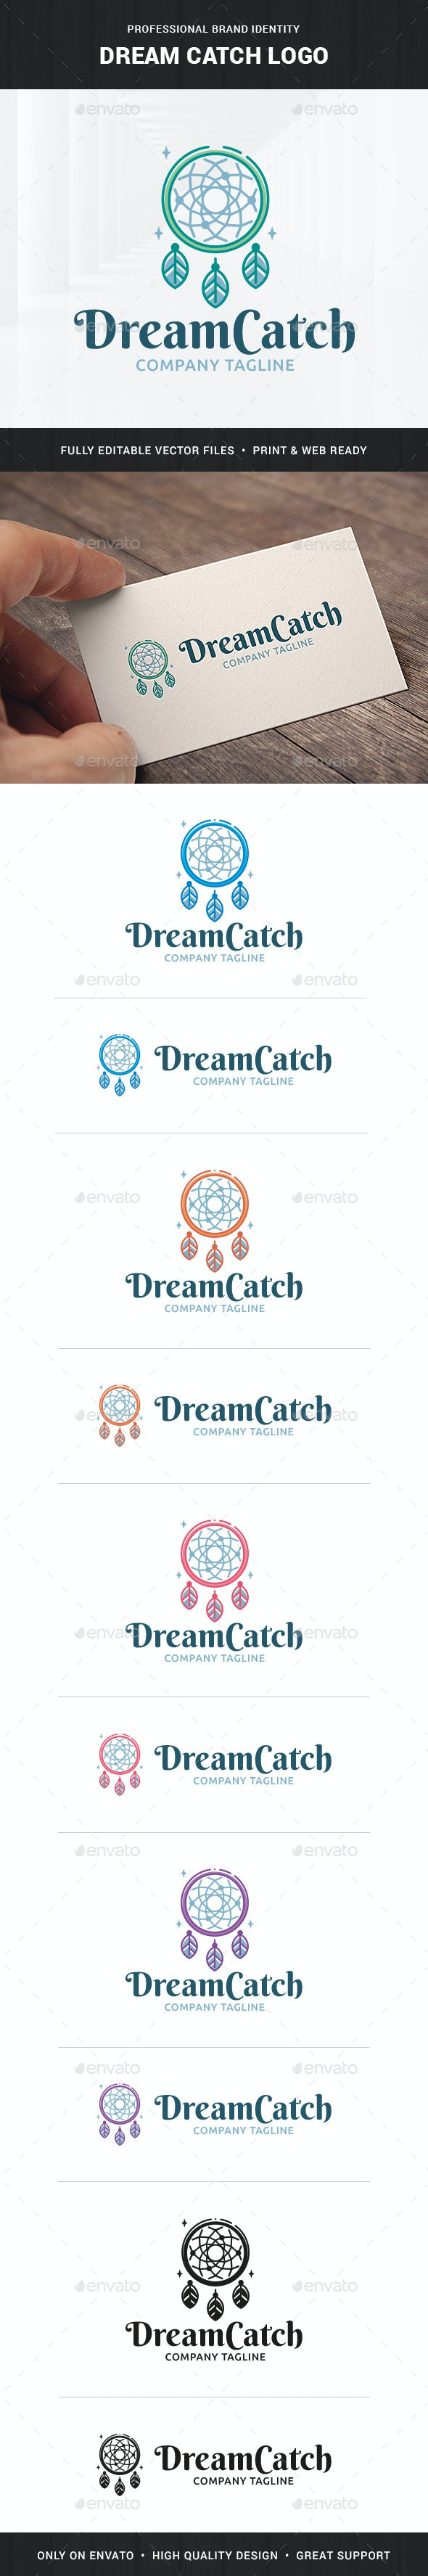 Dream Catch Logo Template - Objects Logo Templates